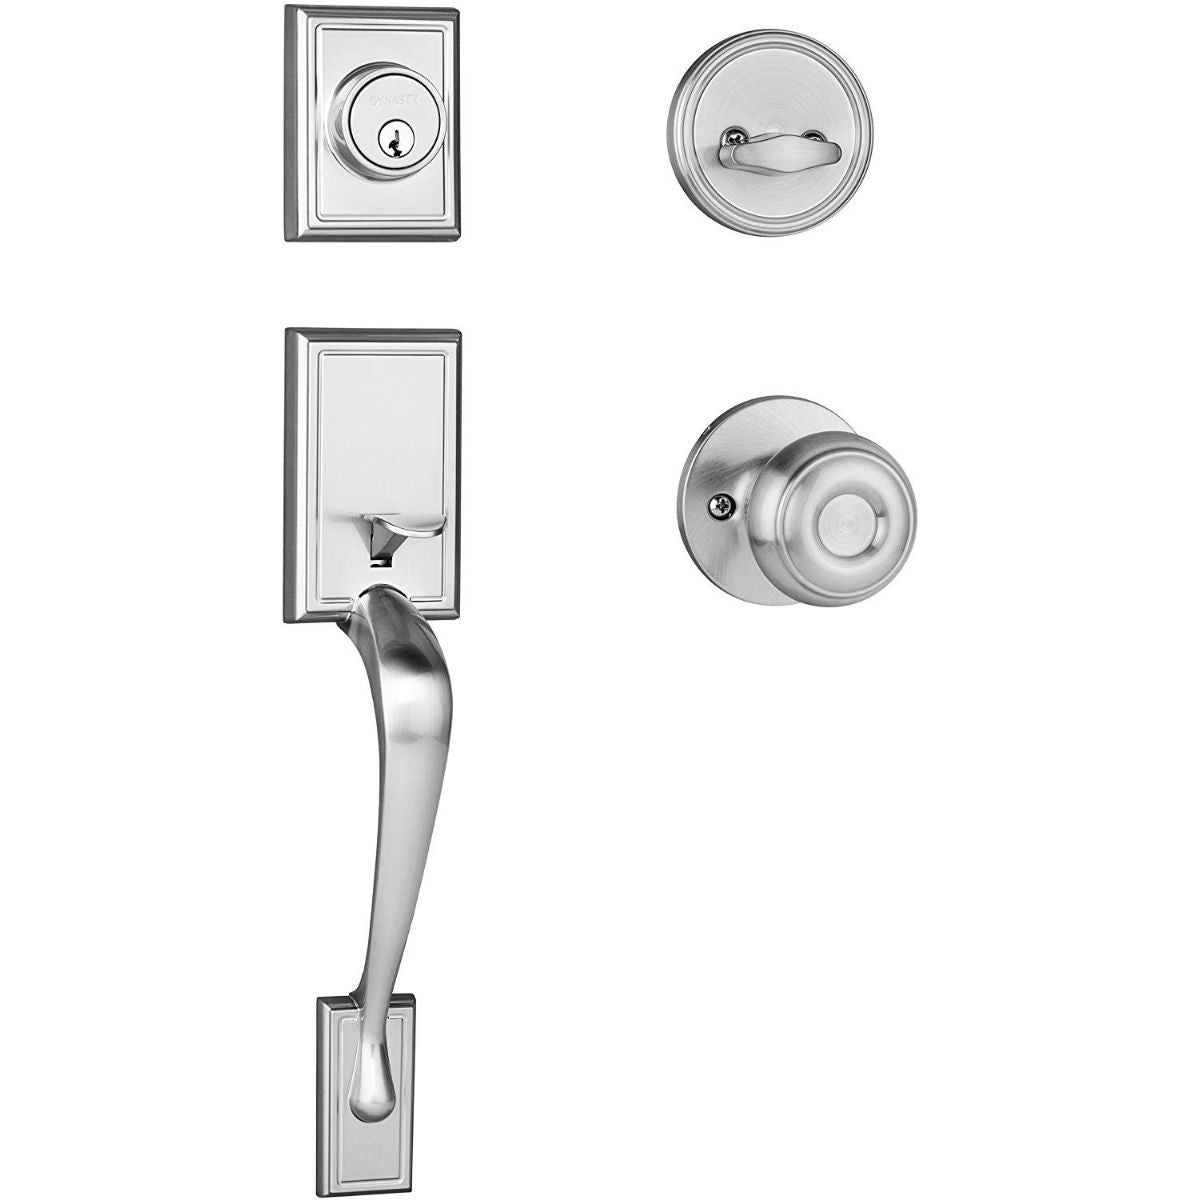 Dynasty Hardware Ridgecrest RID-SIE-100-15 Front Door Handleset with Sierra Knob, Satin Nickel